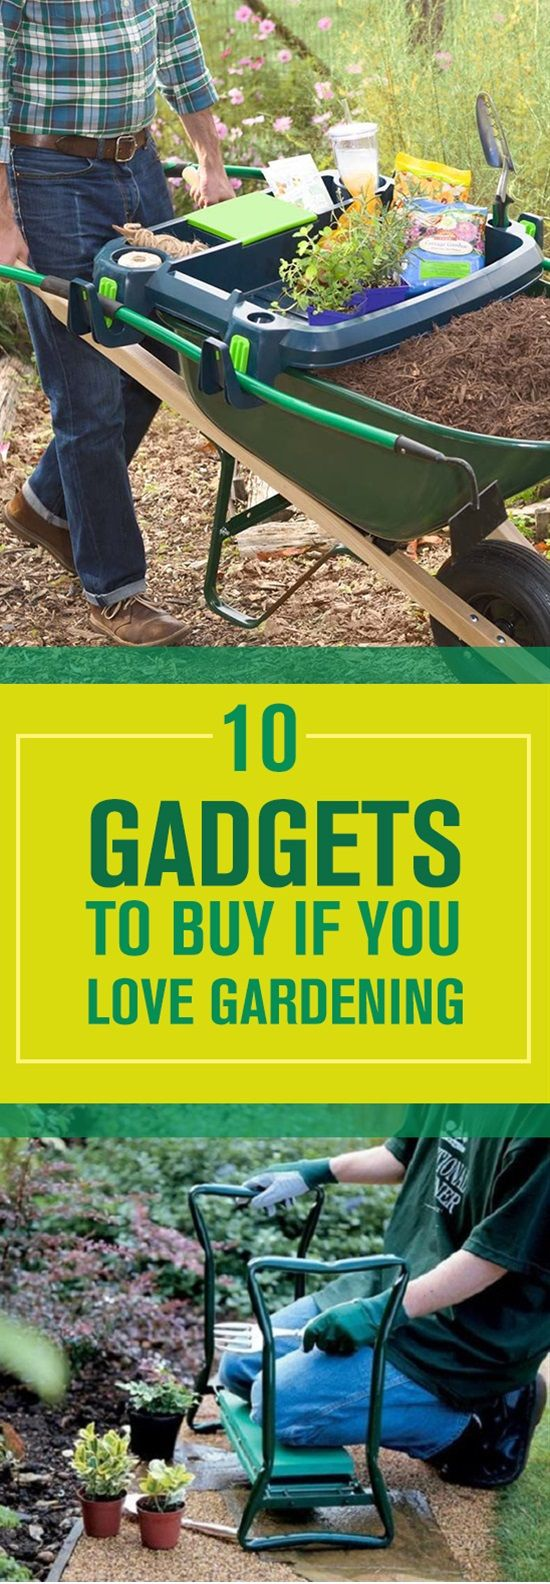 You gardening lovers deserve nice and useful gadgets to make gardening easier and more enjoyable for you. Here are our list of the best 10 gadgets you can buy to make your beautiful hobby more enjoyable.